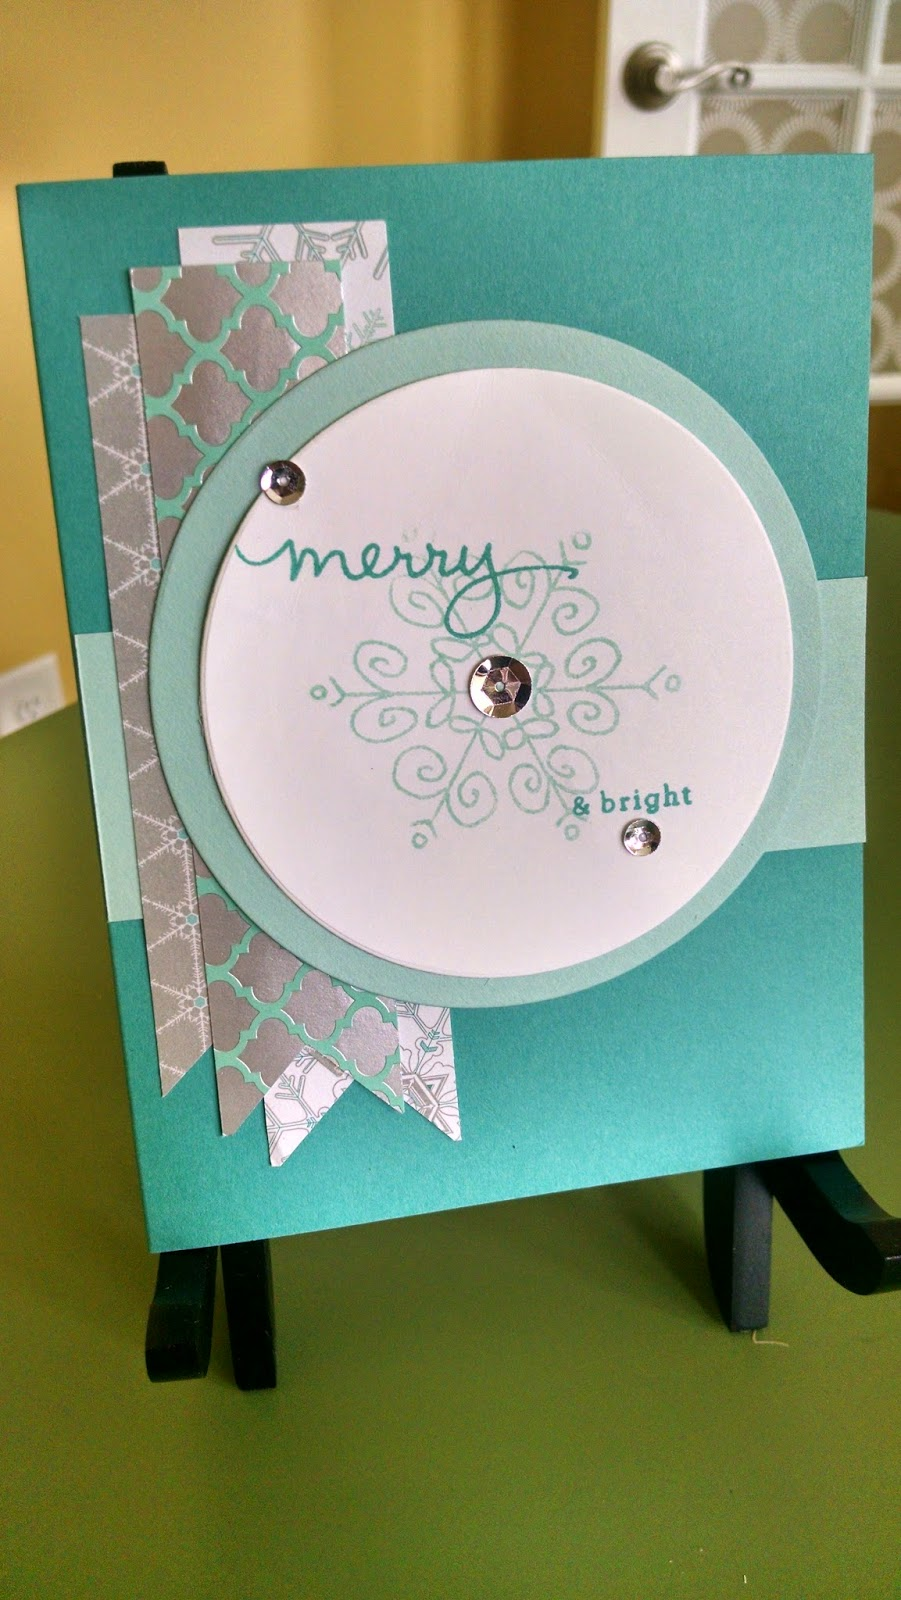 Strips of DSP make this Christmas Card, which uses the Stampin' Up! Endless Wishes set, pop